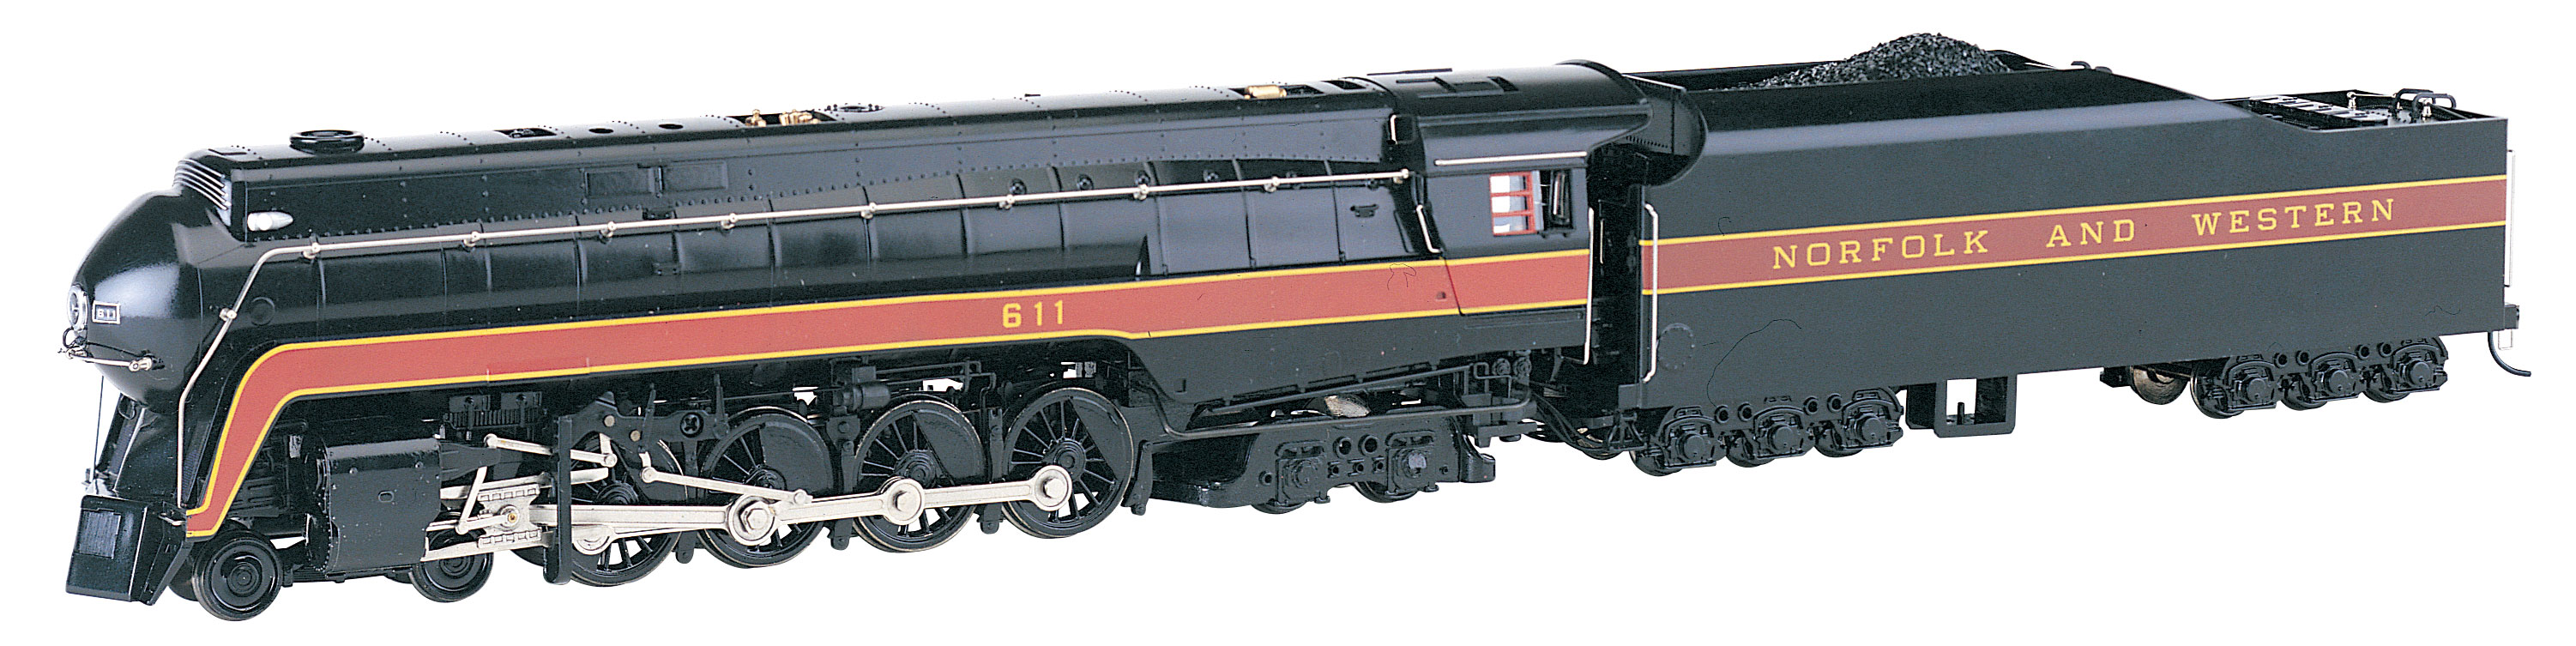 Norfolk & Western 4-8-4 Class J #611- DCC Sound Value - HO Scale